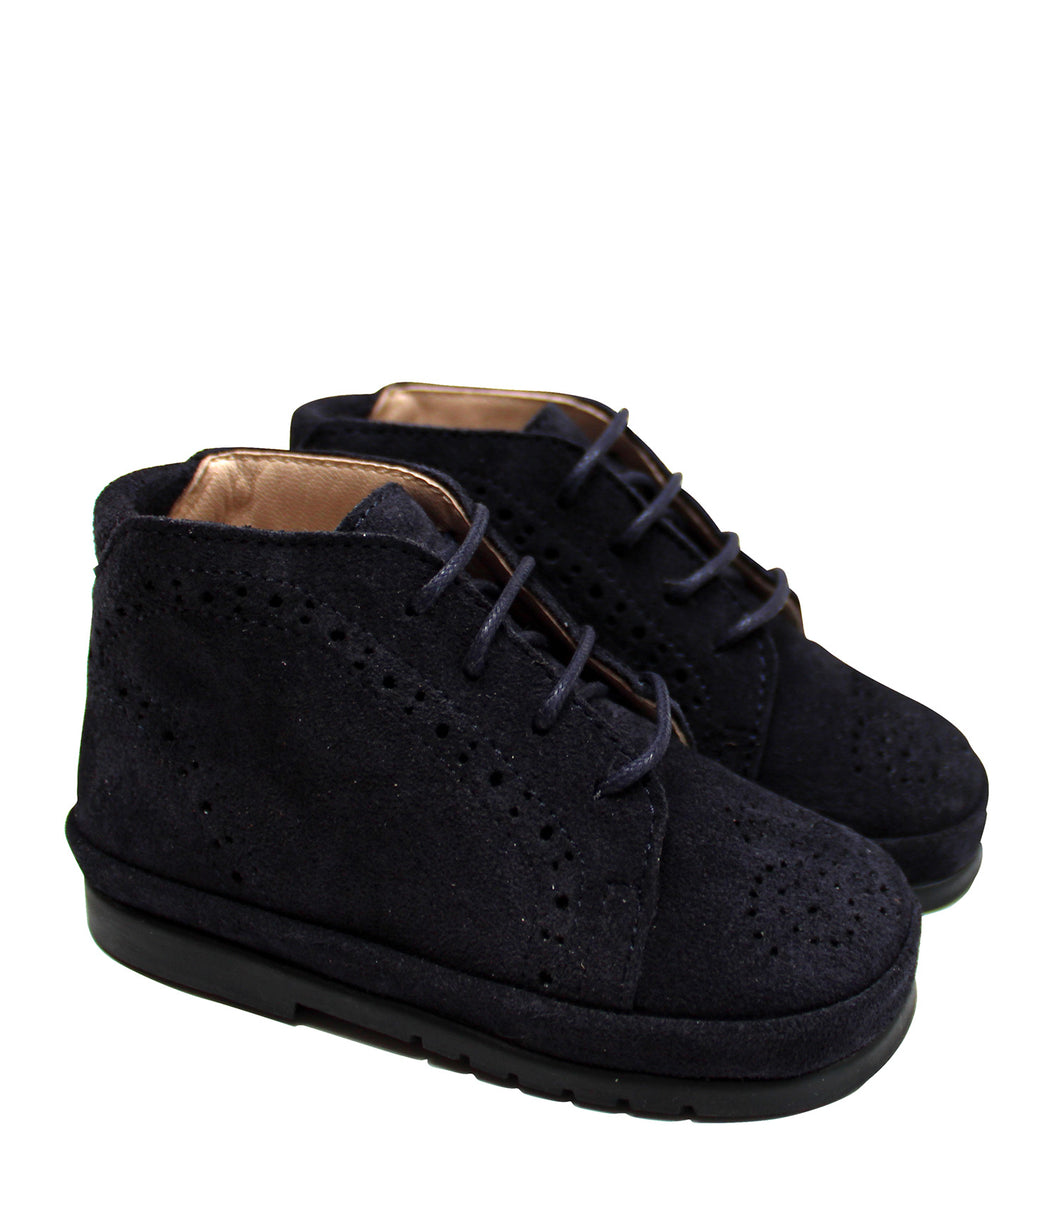 Toddler brogue shoes